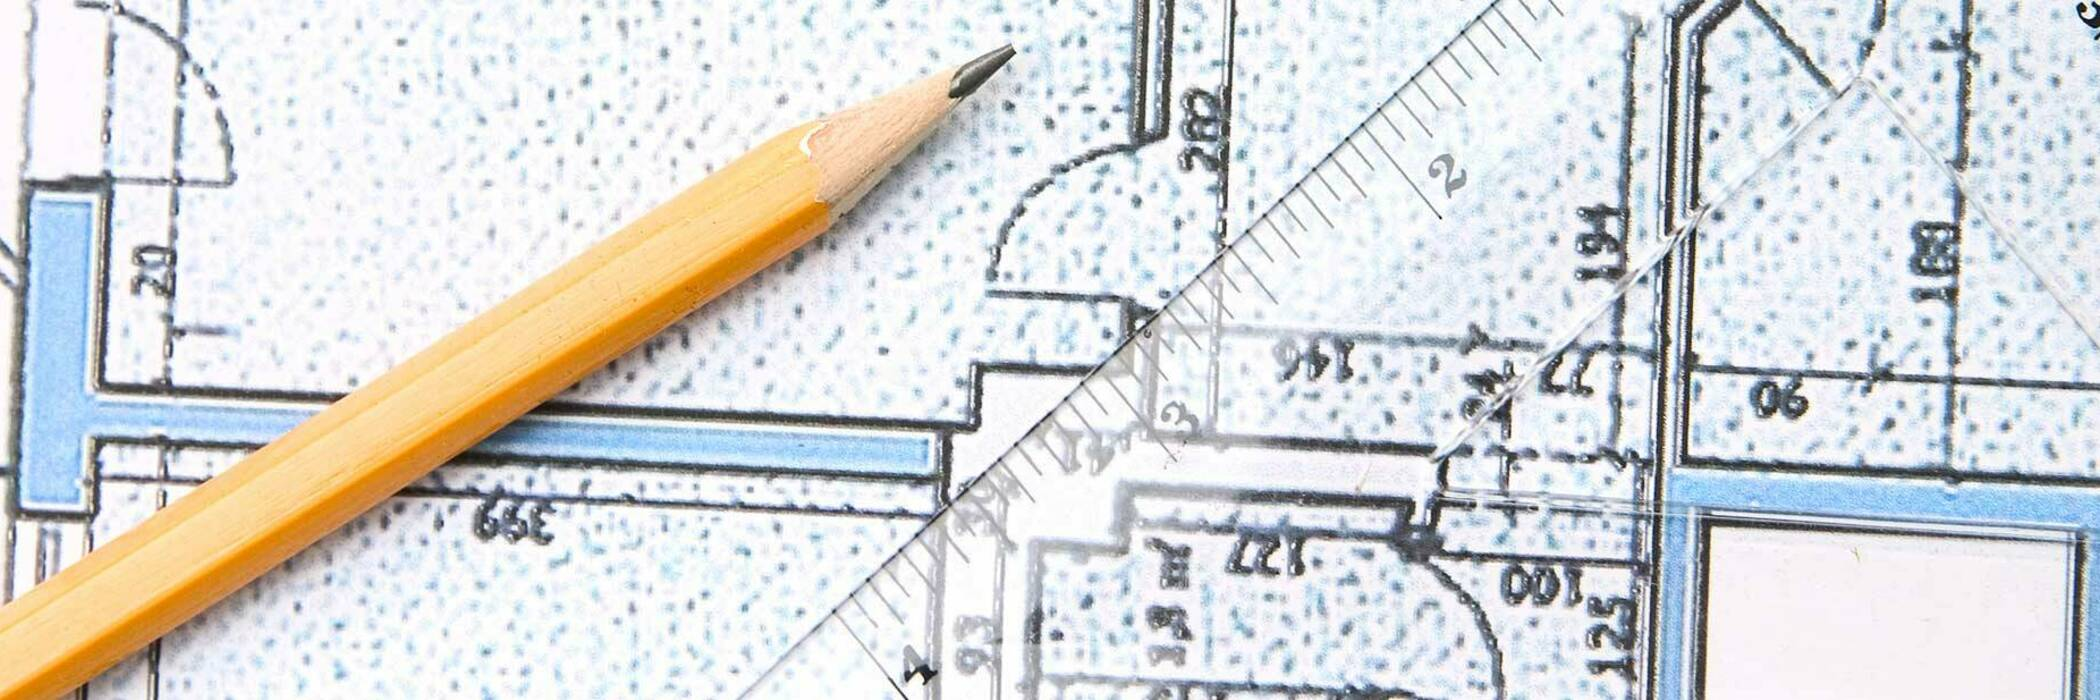 Pencil and ruler on house plan